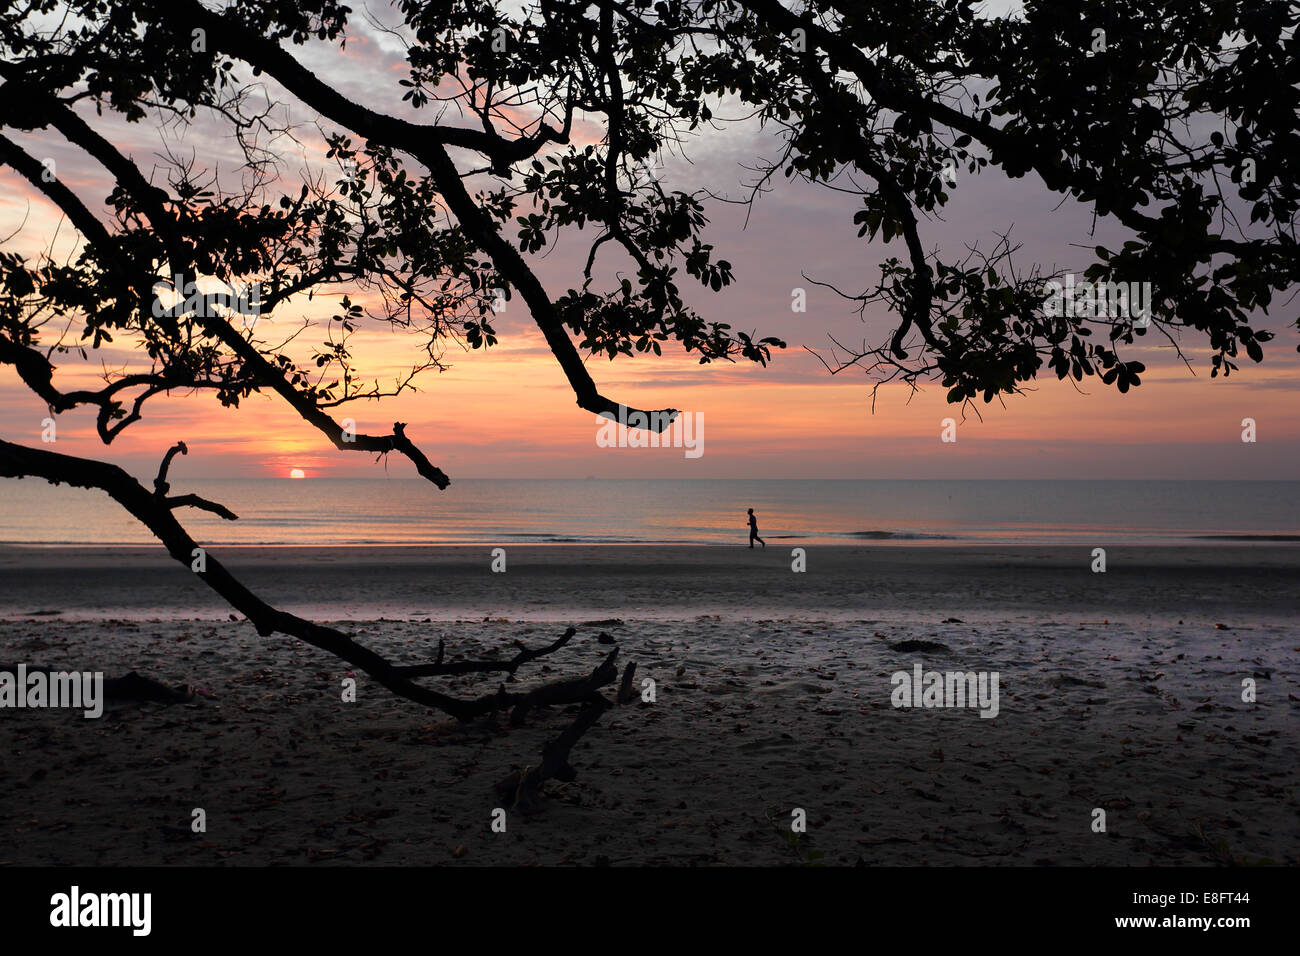 A silhouetted man running at beach during twilight - Stock Image